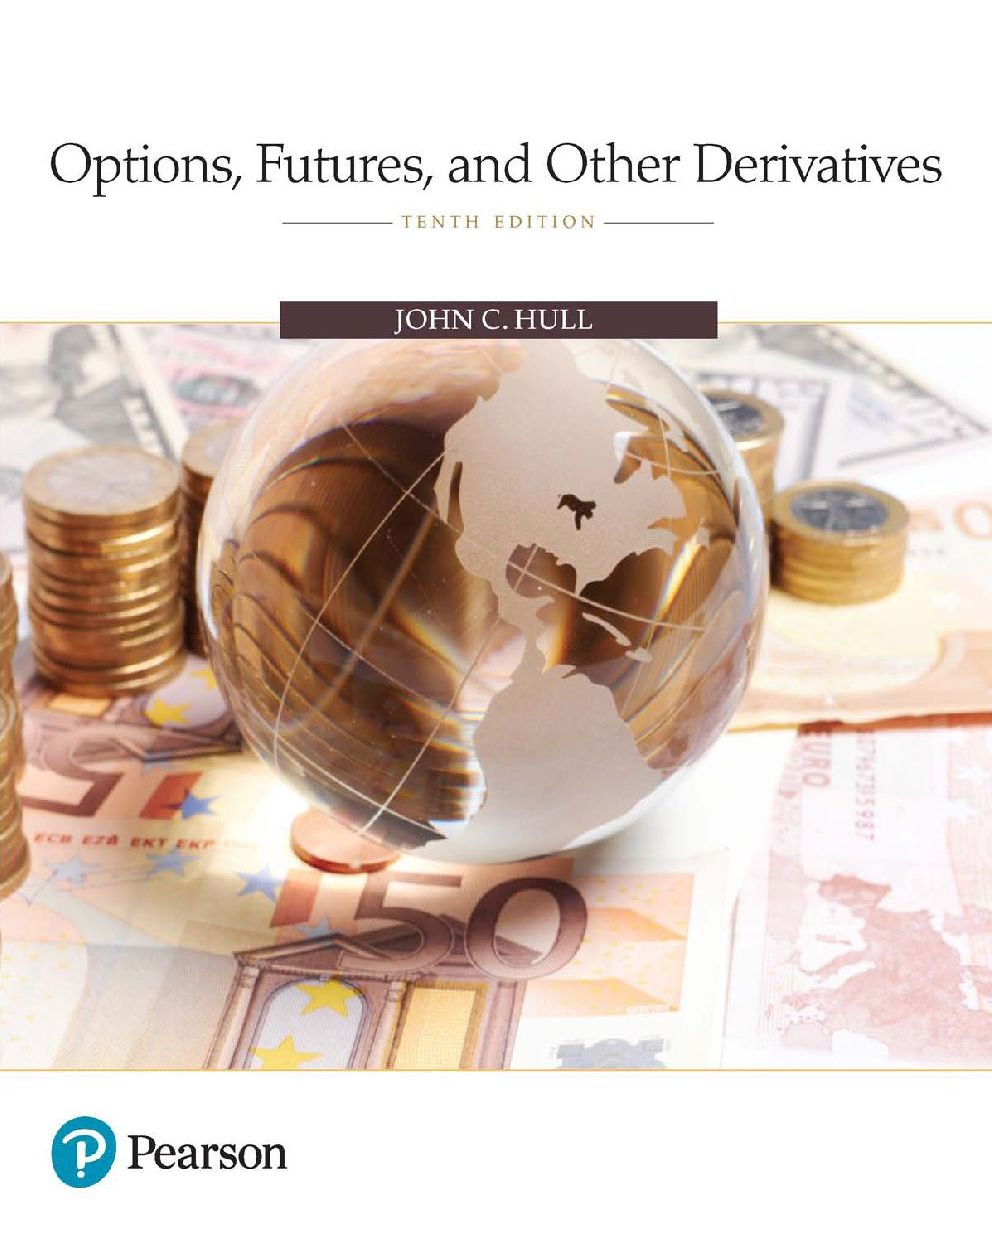 Downloadslide download slides ebooks solution manual and ebook solution manual powerpoint test bank book title options futures and other derivatives edition 10th edition authors john c hull fandeluxe Image collections